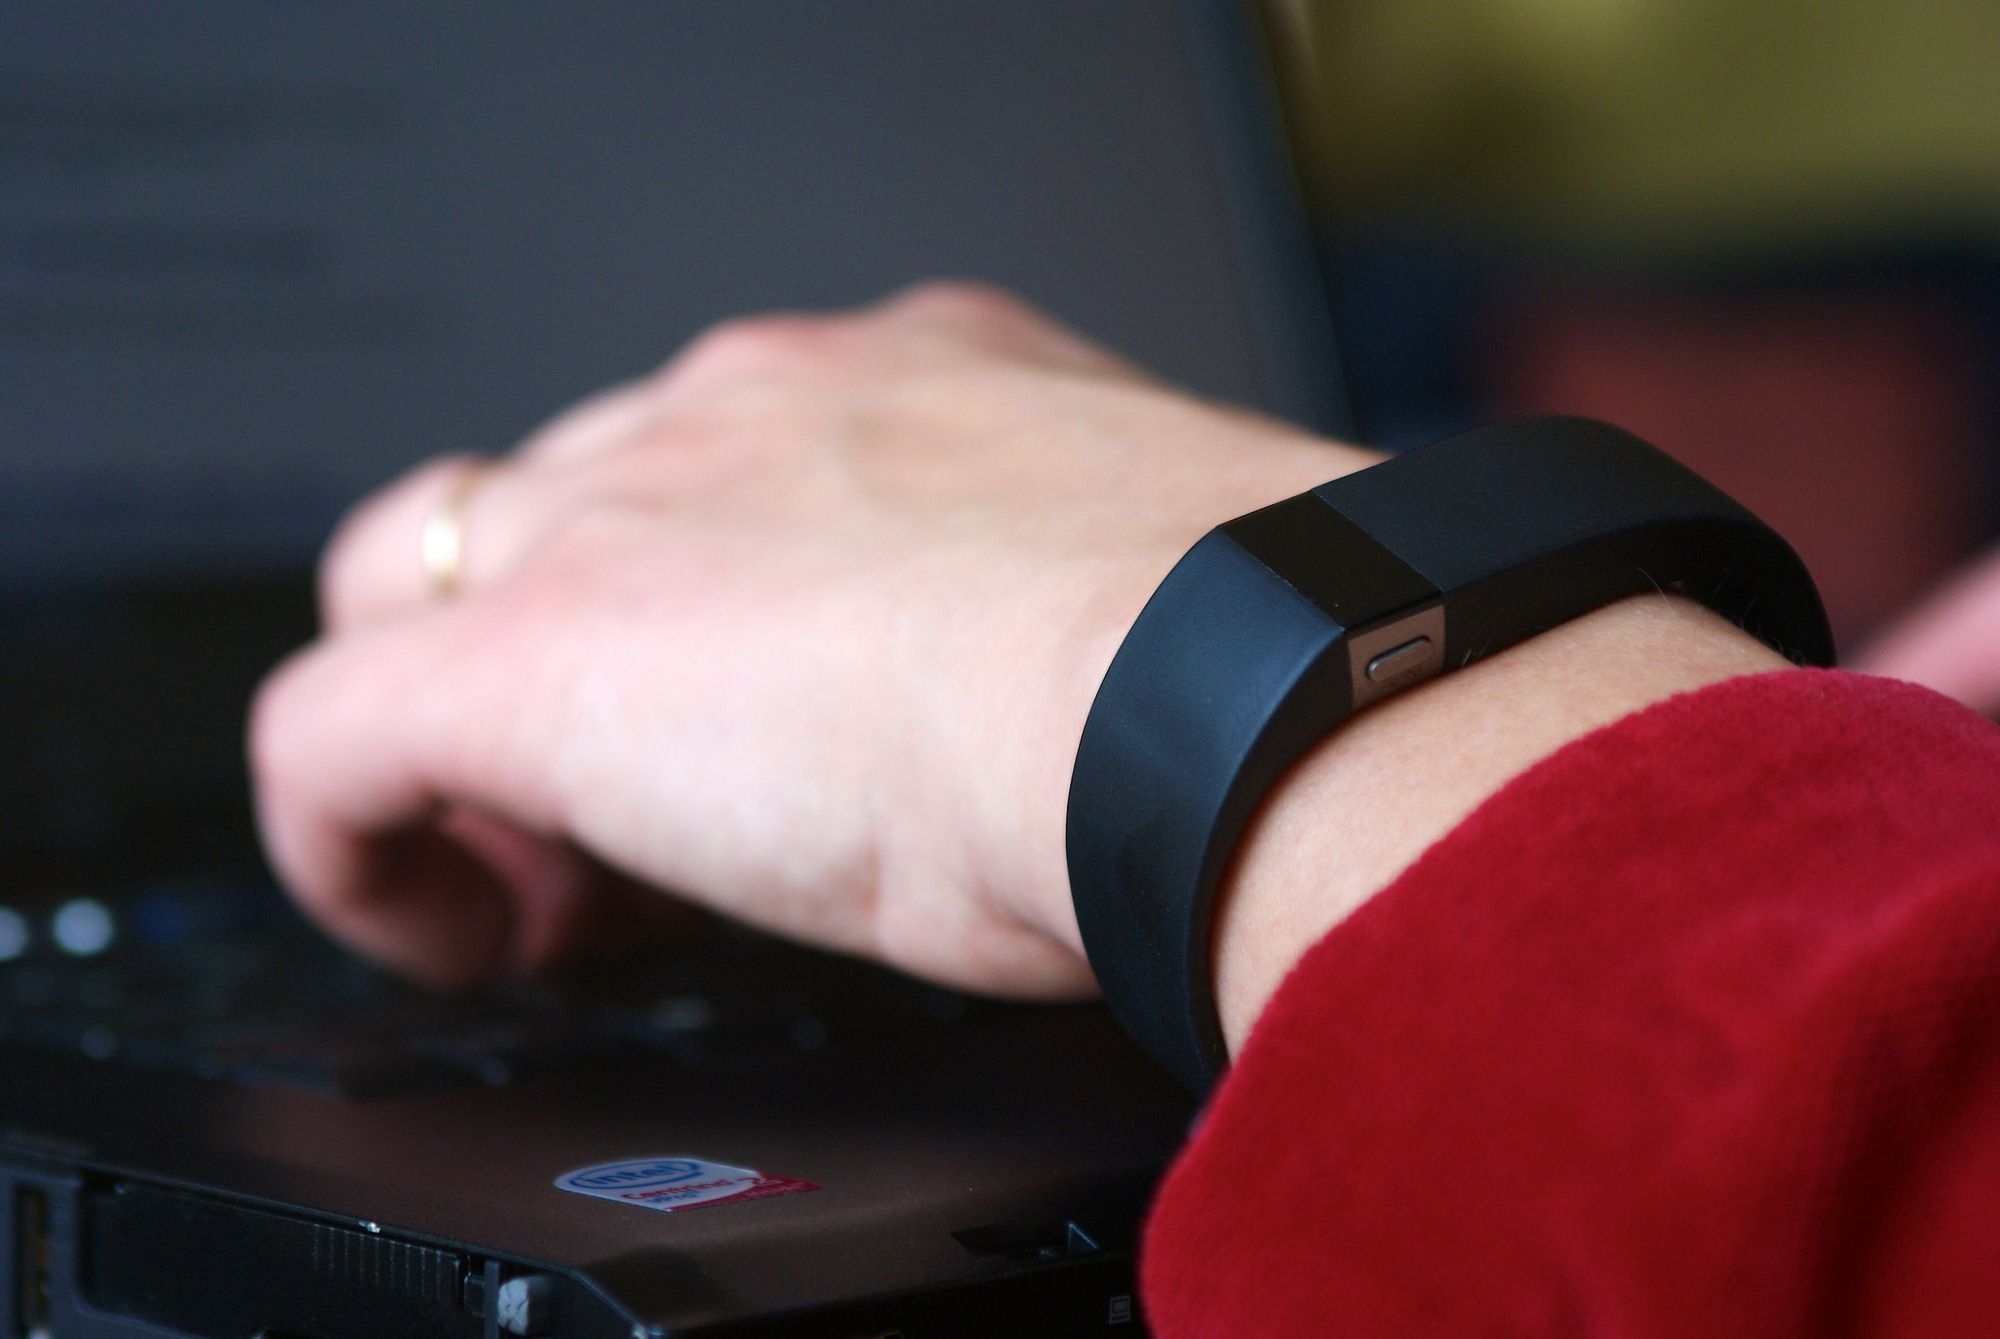 Wearing a Fitbit Fitness Band While Typing